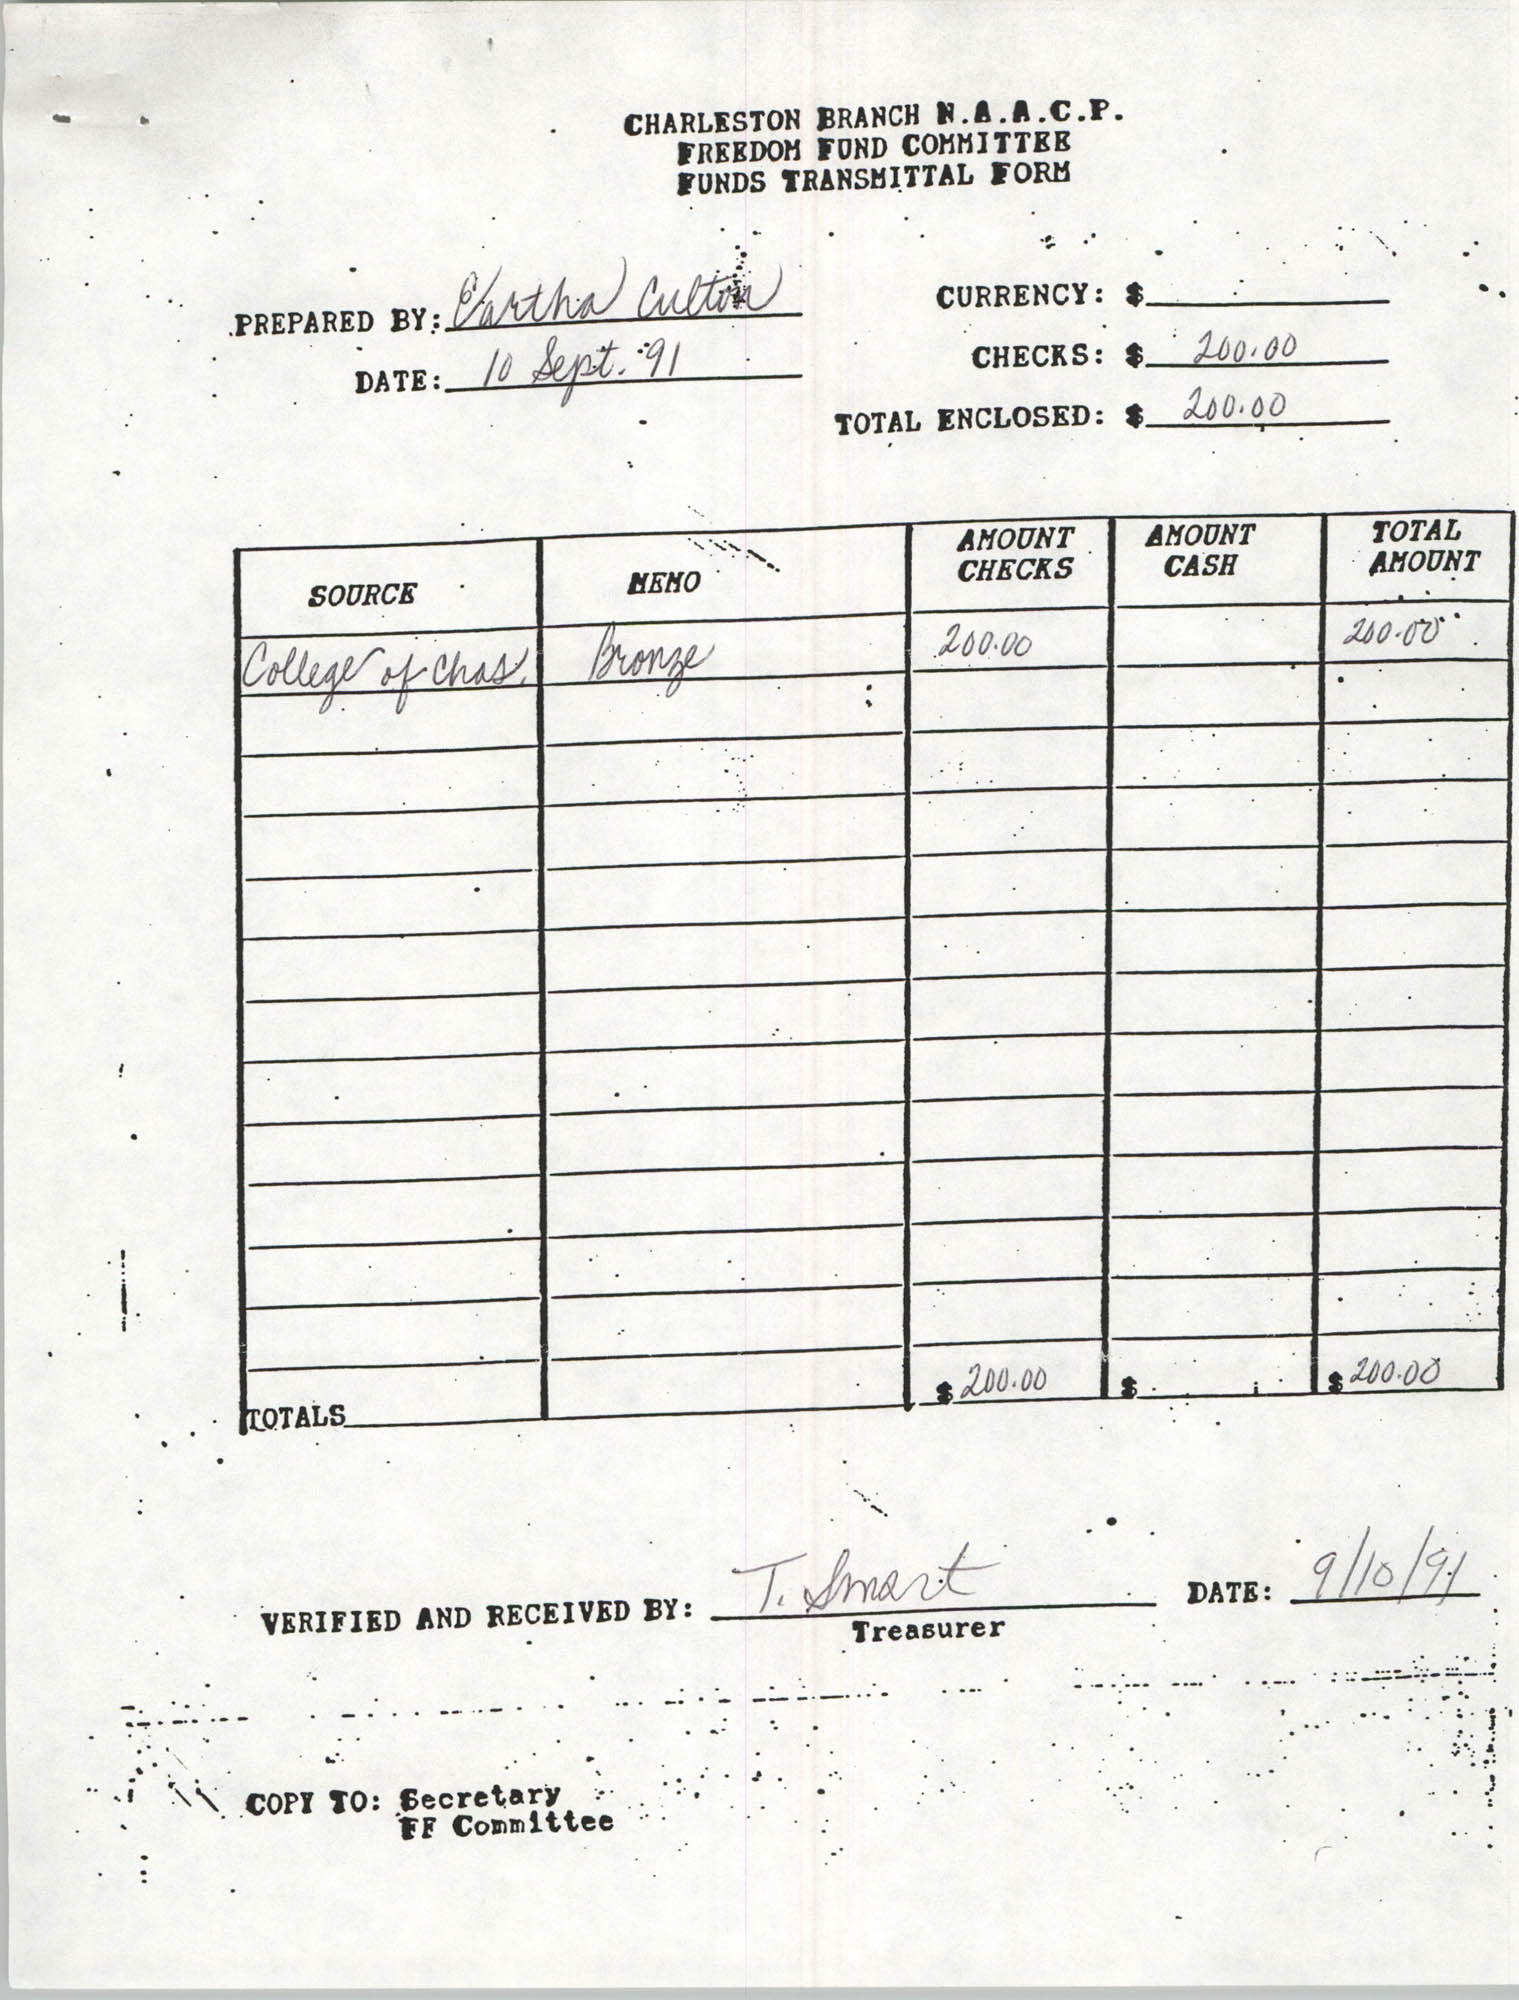 Charleston Branch of the NAACP Funds Transmittal Forms, September 1991, Page 20